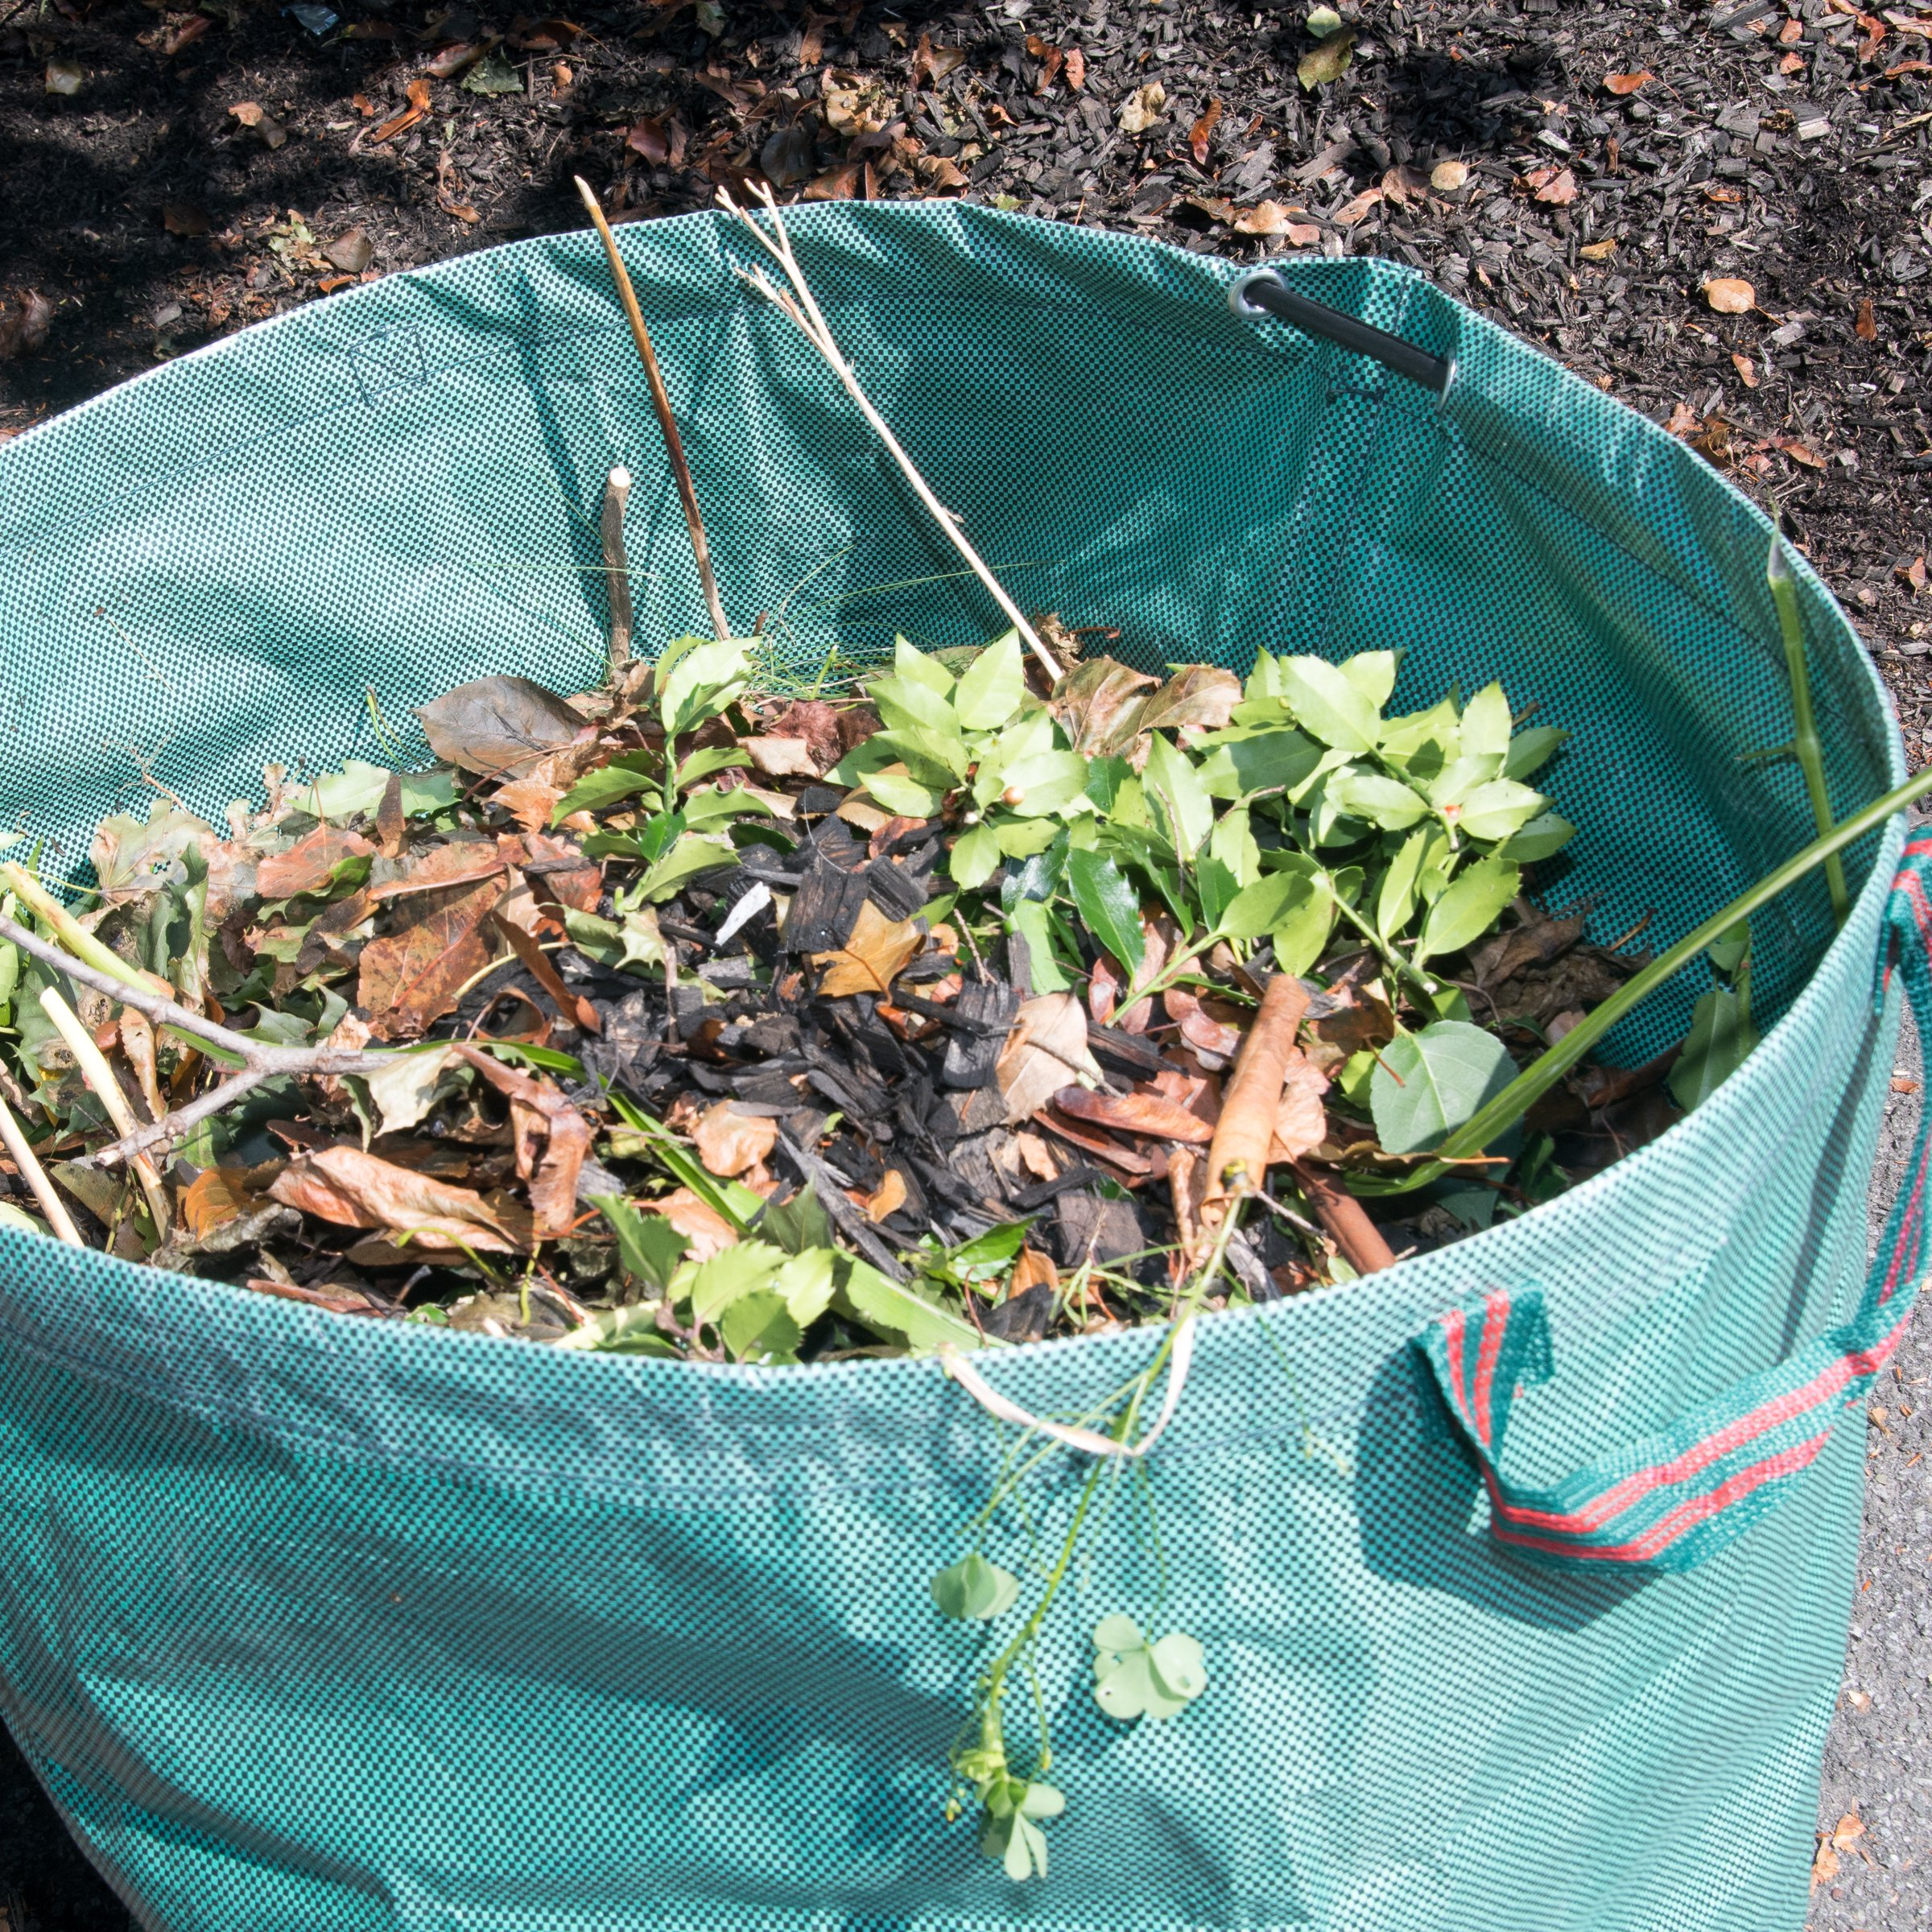 Mixitude Garden Hand Leaf Claw Scoops complete with Protective Wrist Pad and 72 Gallon Leaf Waste Bag by Mixtitude (Image #9)